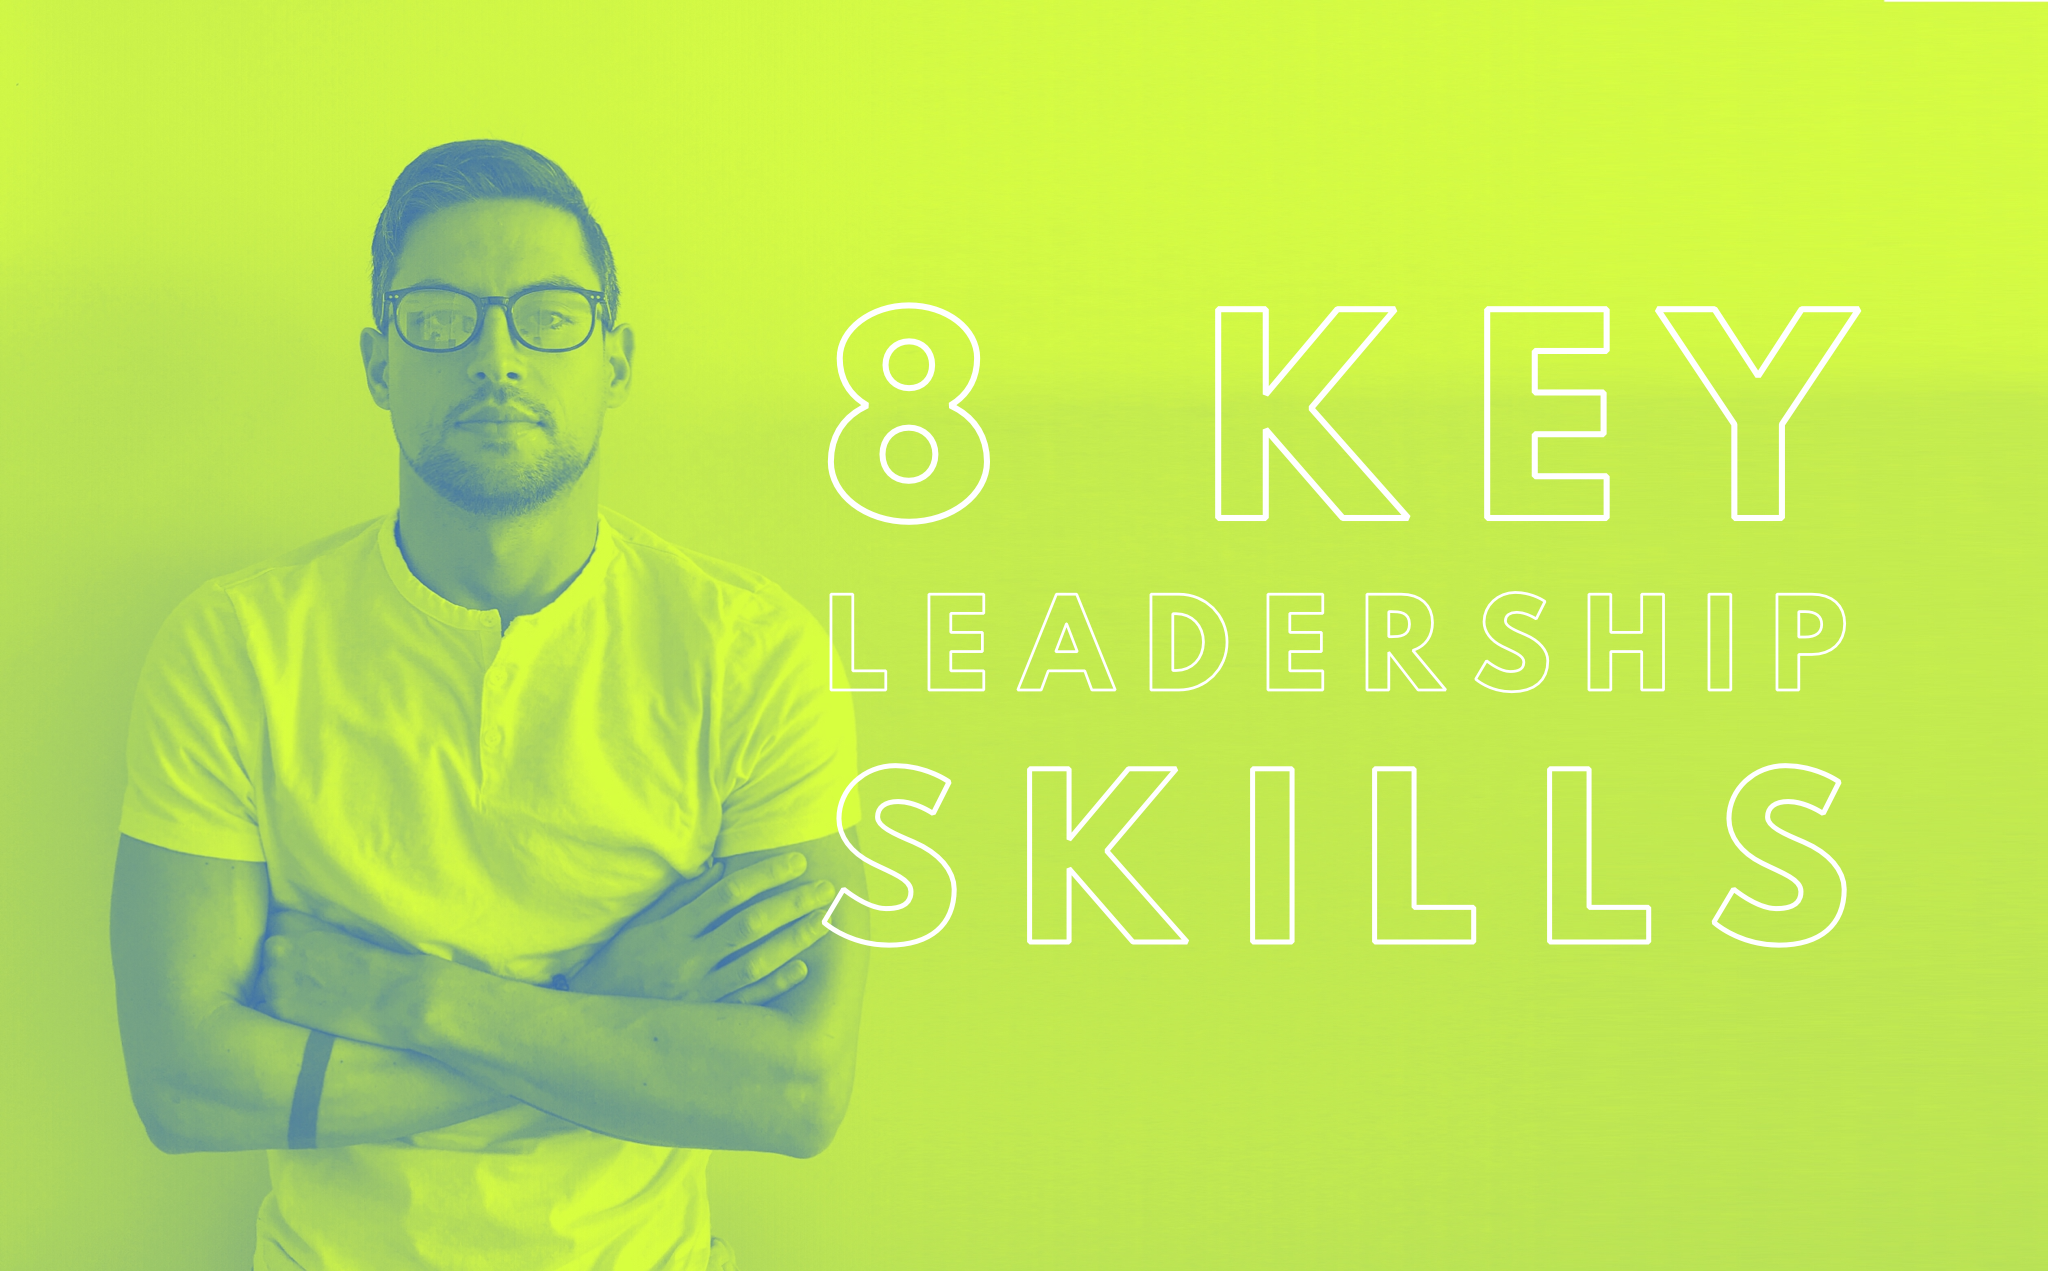 leadership skills by marco calamassi